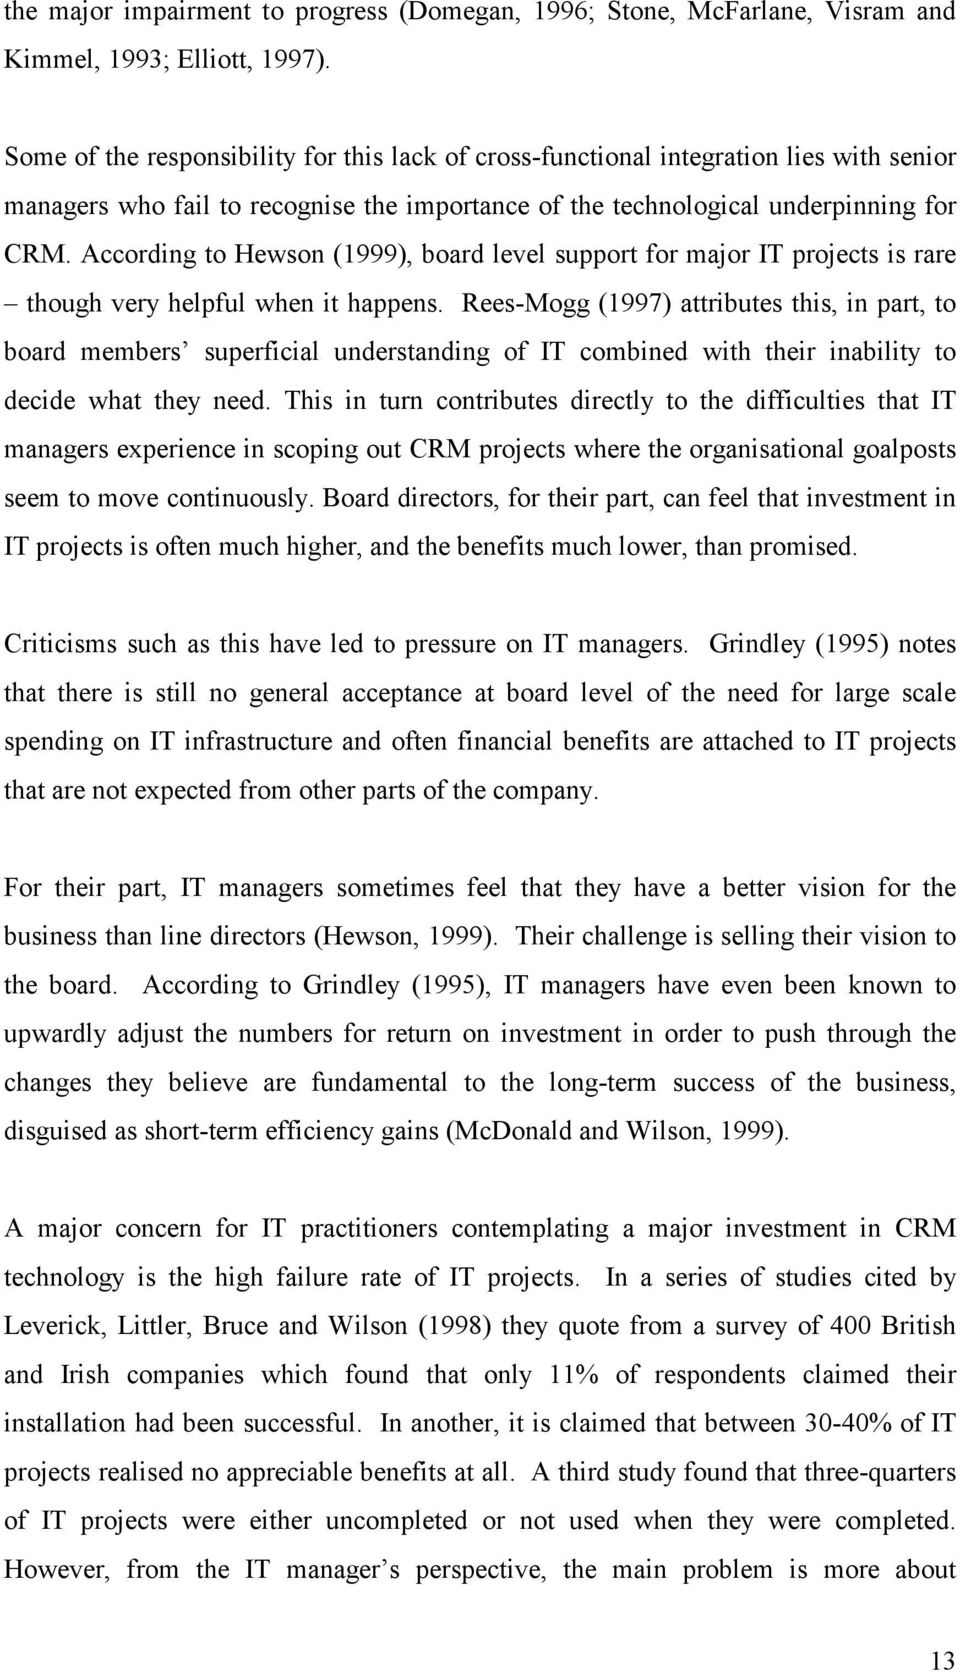 According to Hewson (1999), board level support for major IT projects is rare though very helpful when it happens.